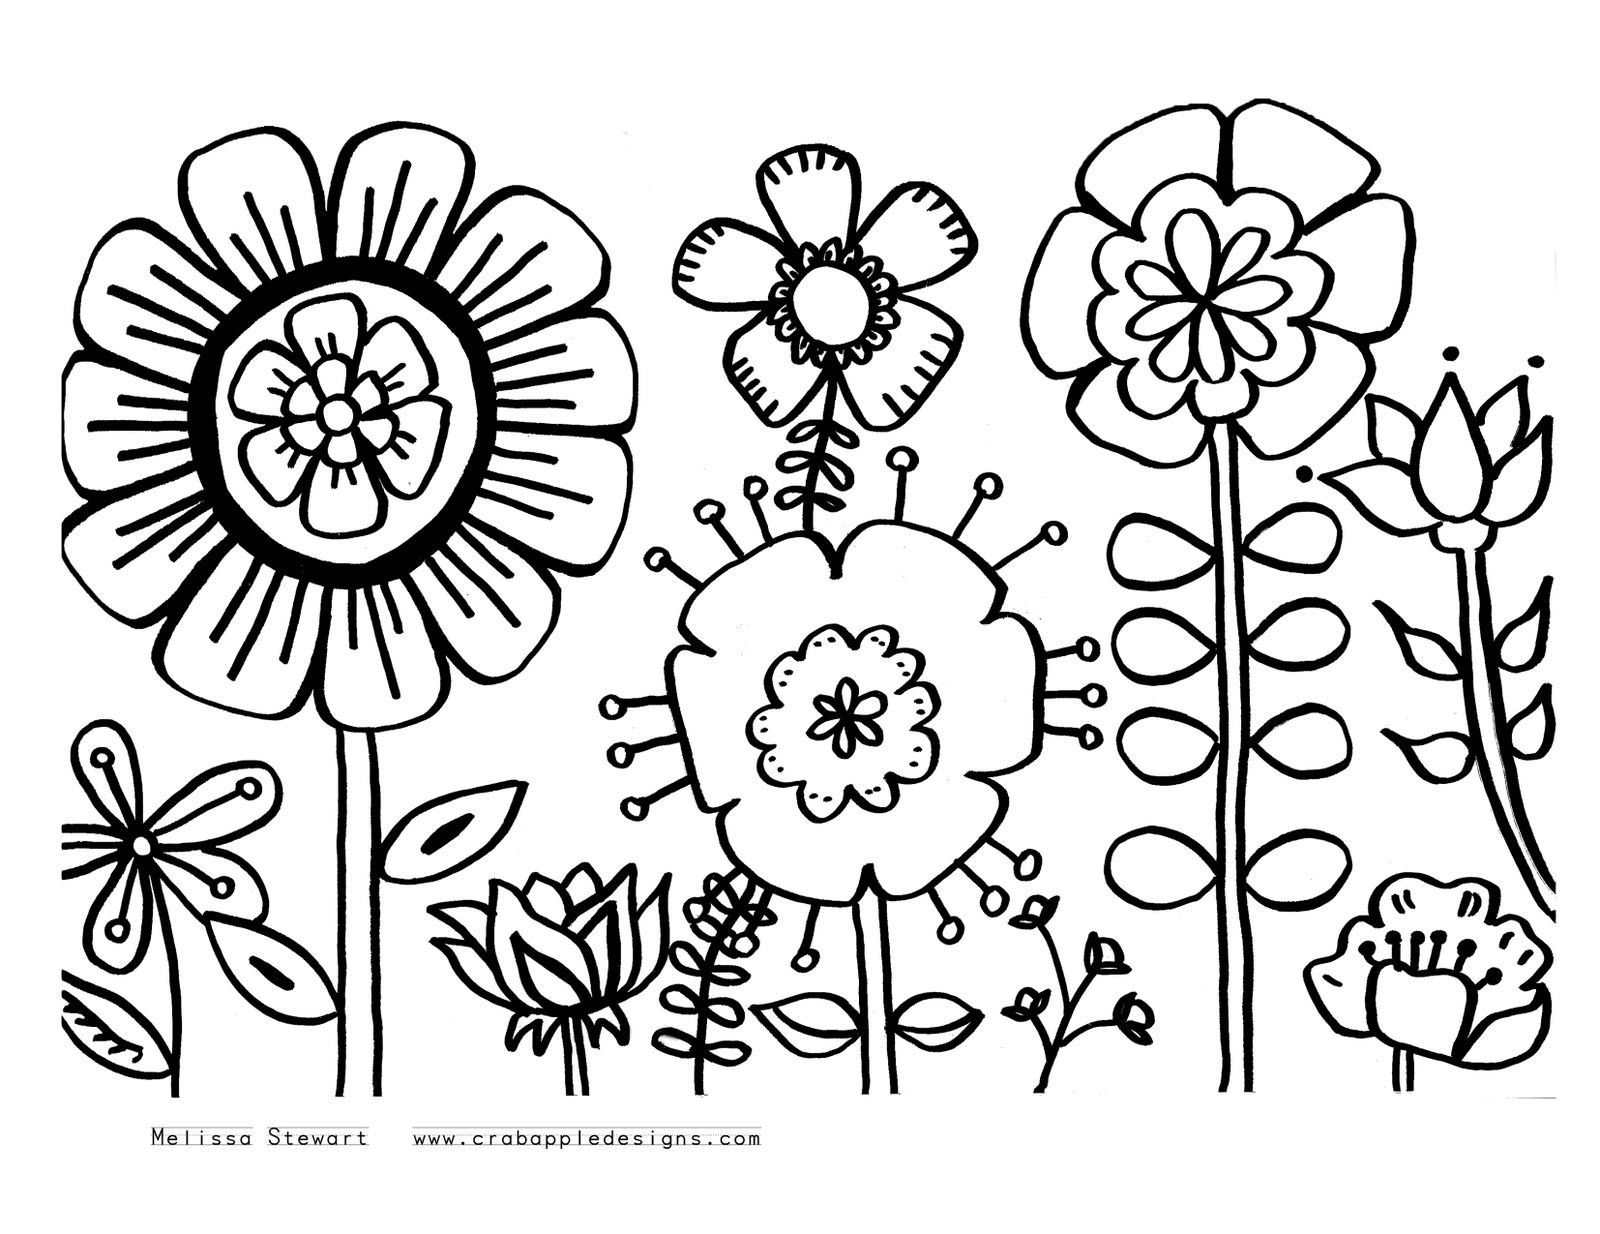 Flower coloring page coloring books flower coloring page in set free coloring kids coloring pages for adults flower coloring page fresh at decor picture